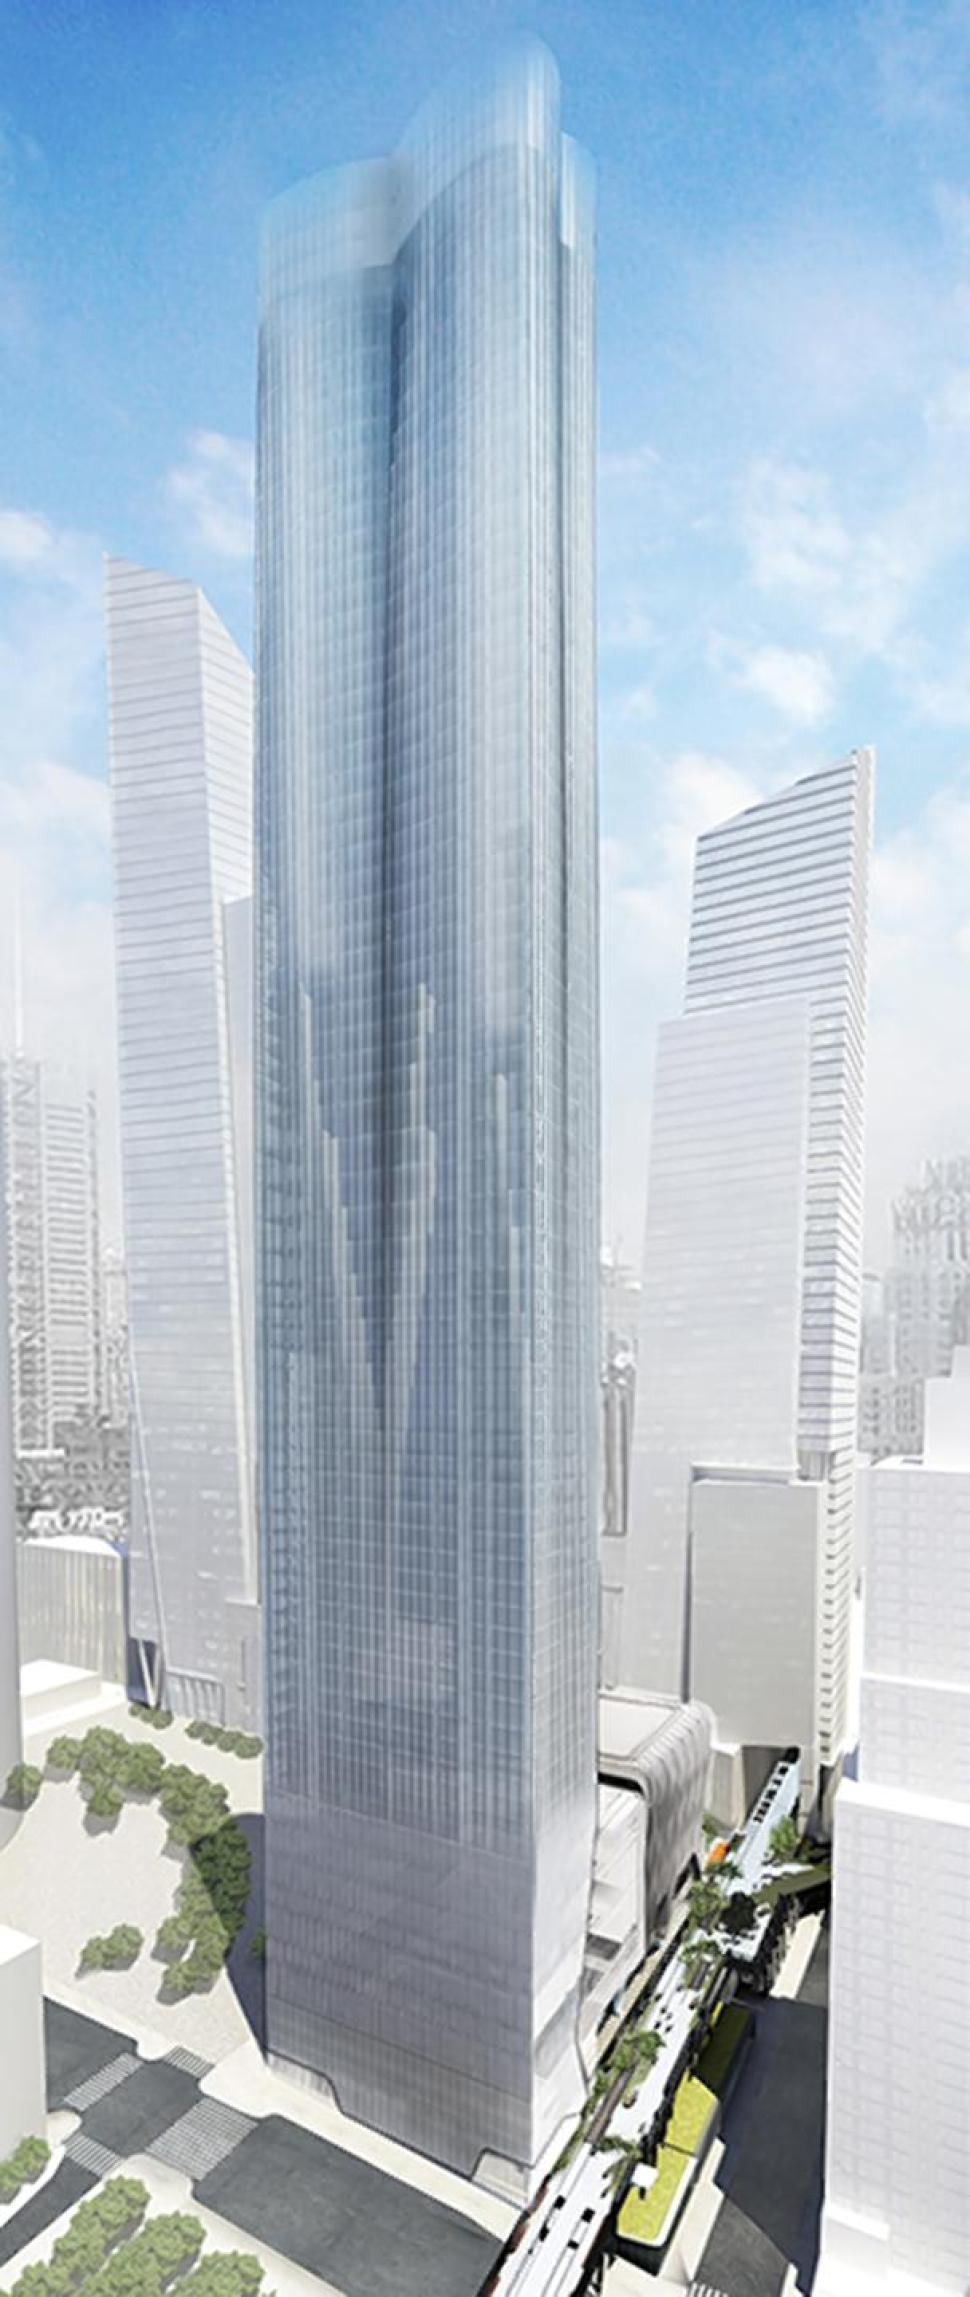 15 Hudson Yards, rendering by Diller Scofidio + Renfro